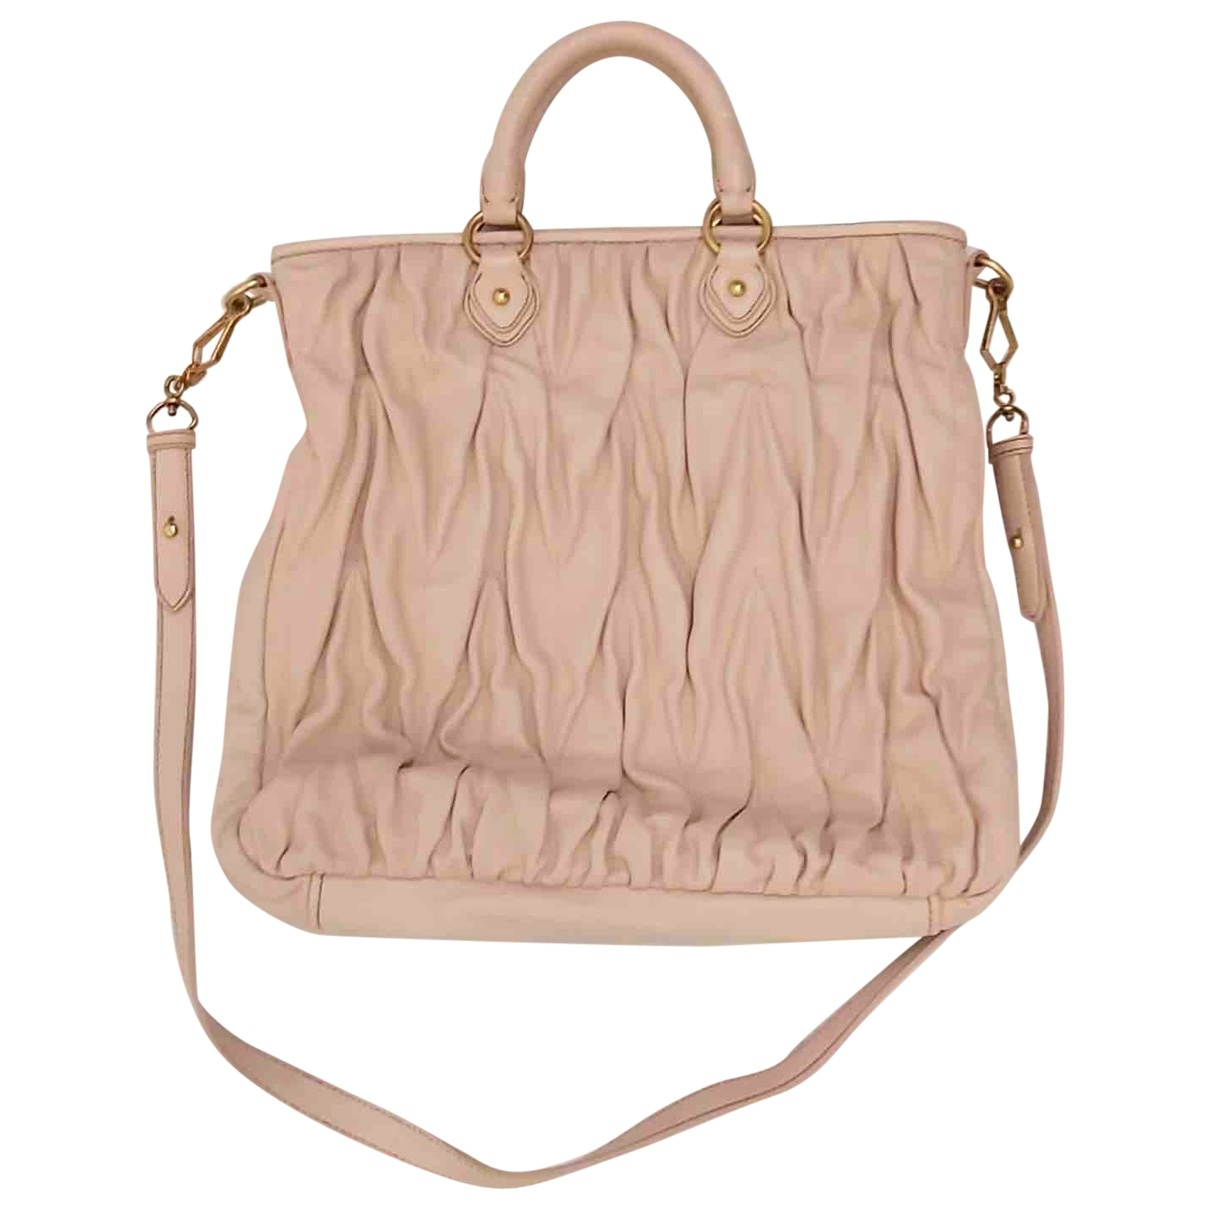 Miu Miu Matelassé Pink Leather handbag for Women \N